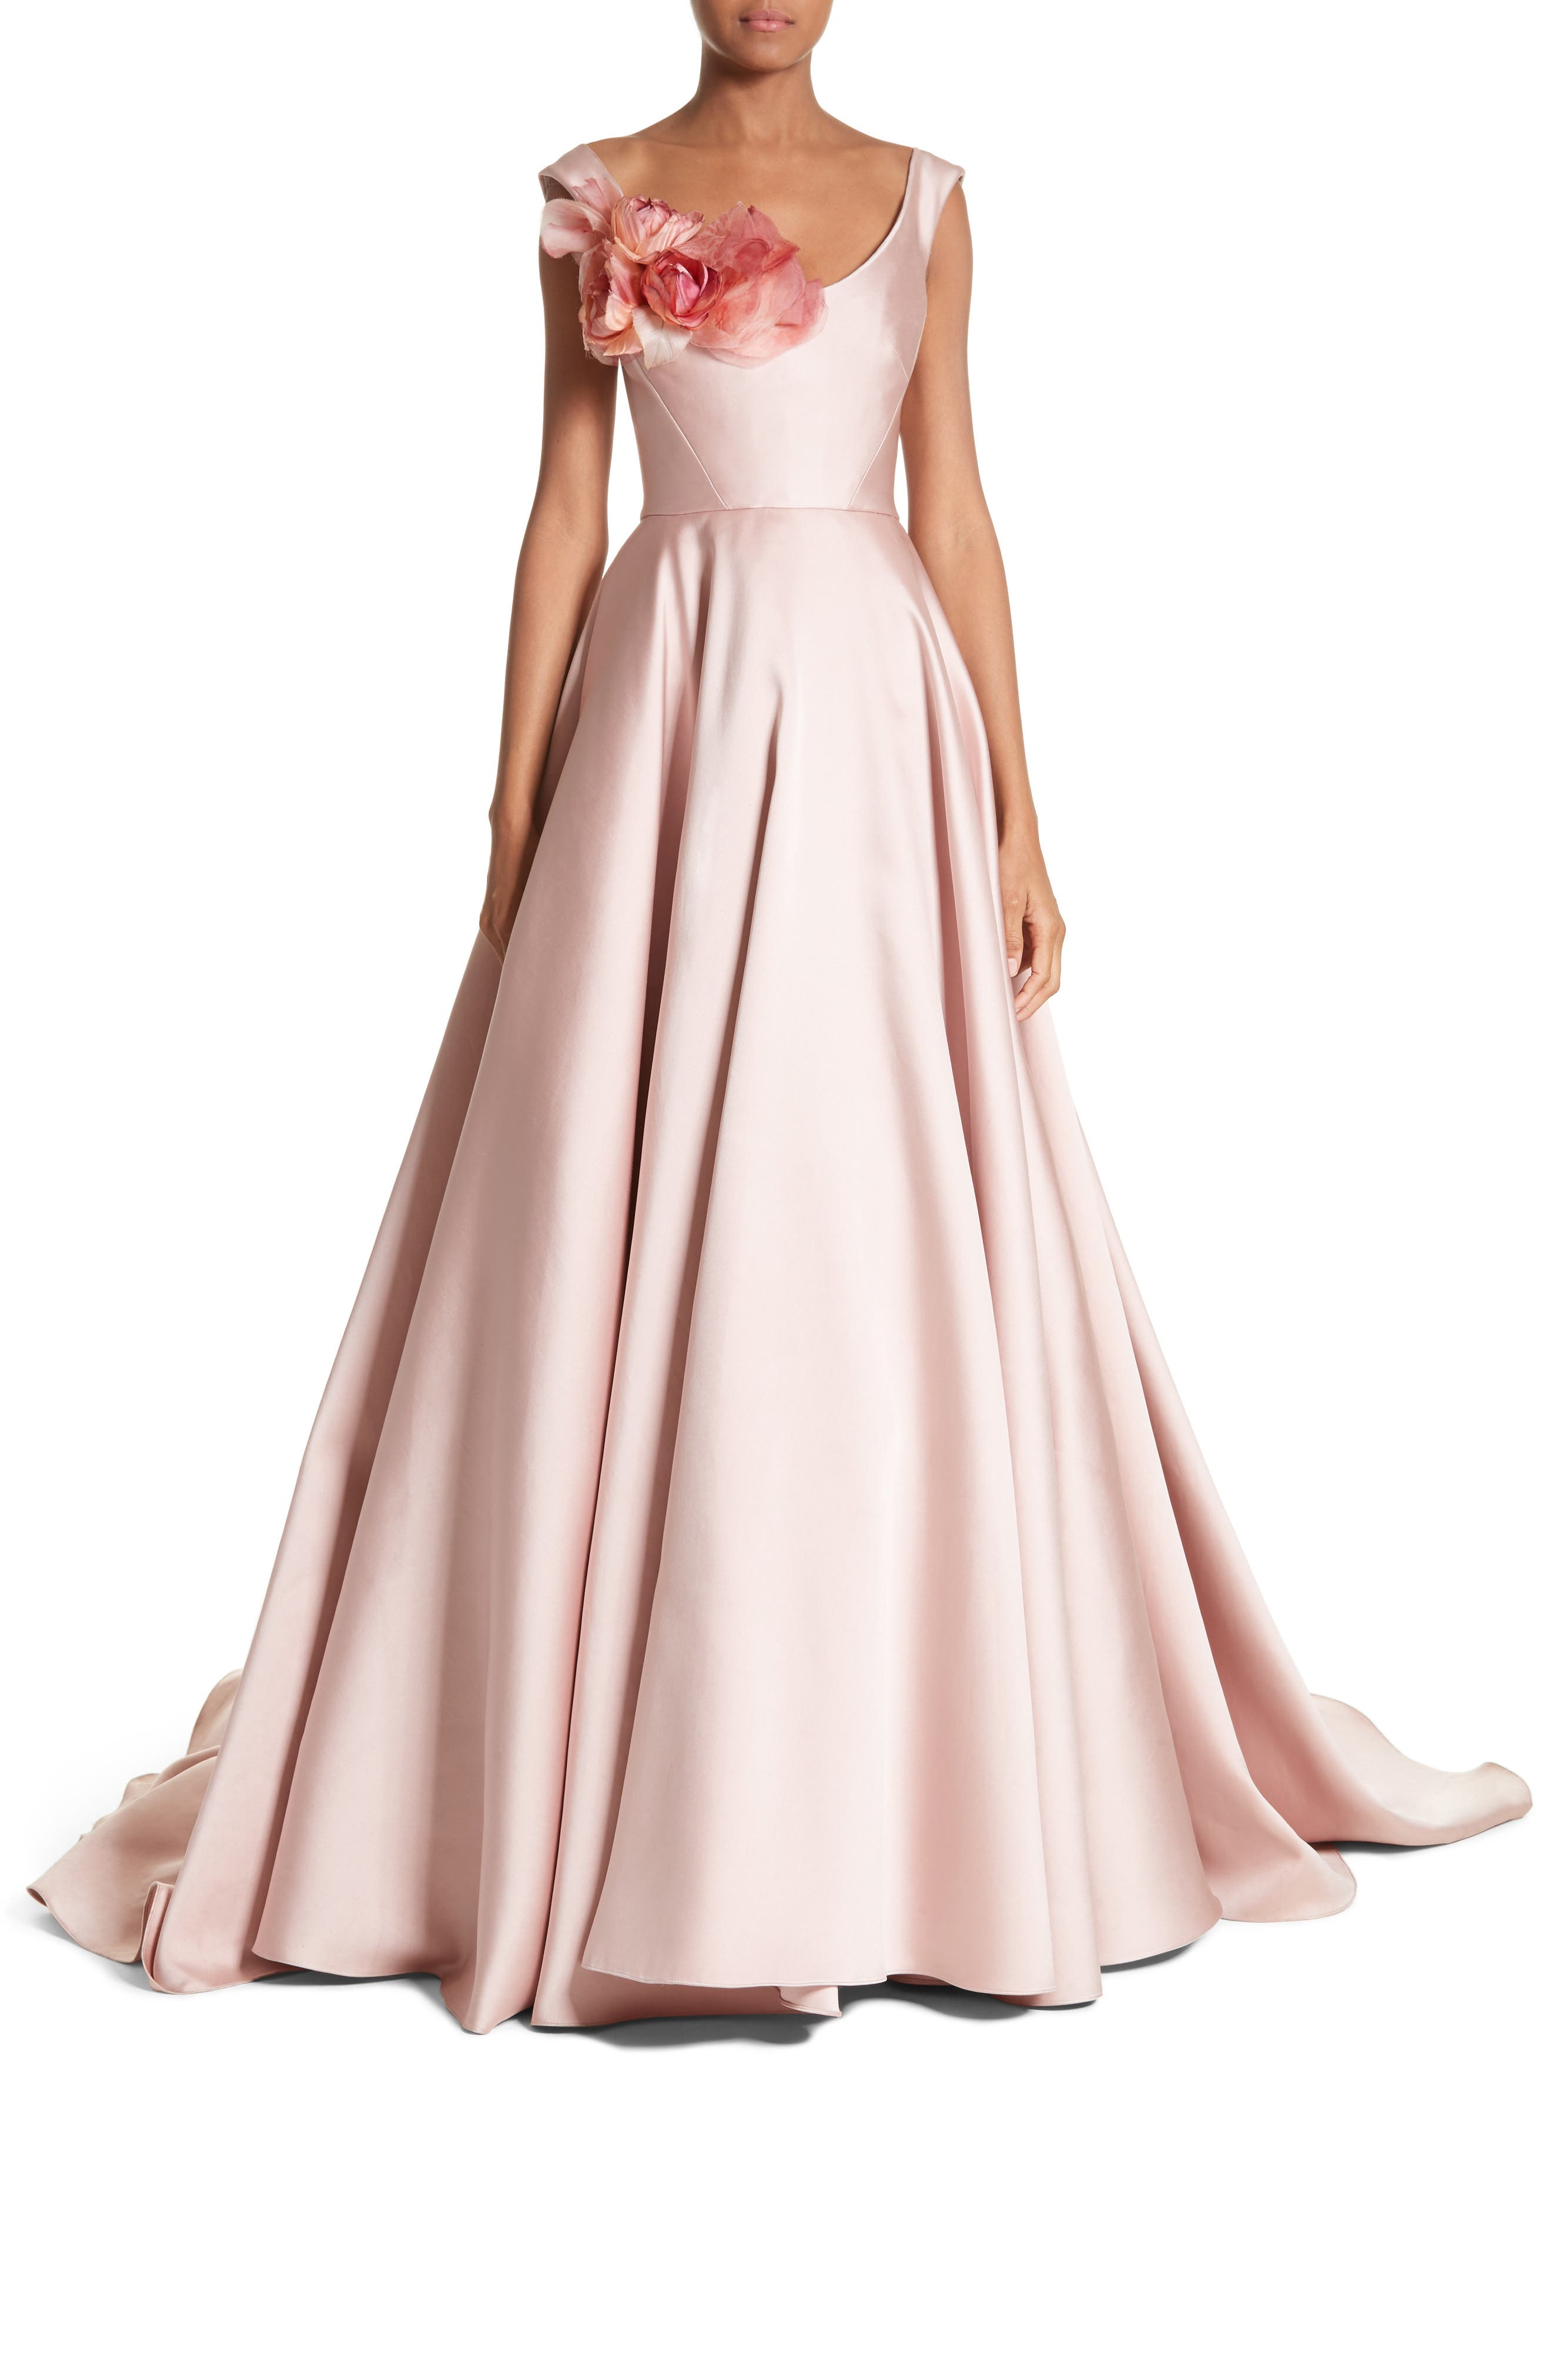 Alternate Image 1 Selected - Marchesa Corsage Off the Shoulder Satin Ballgown